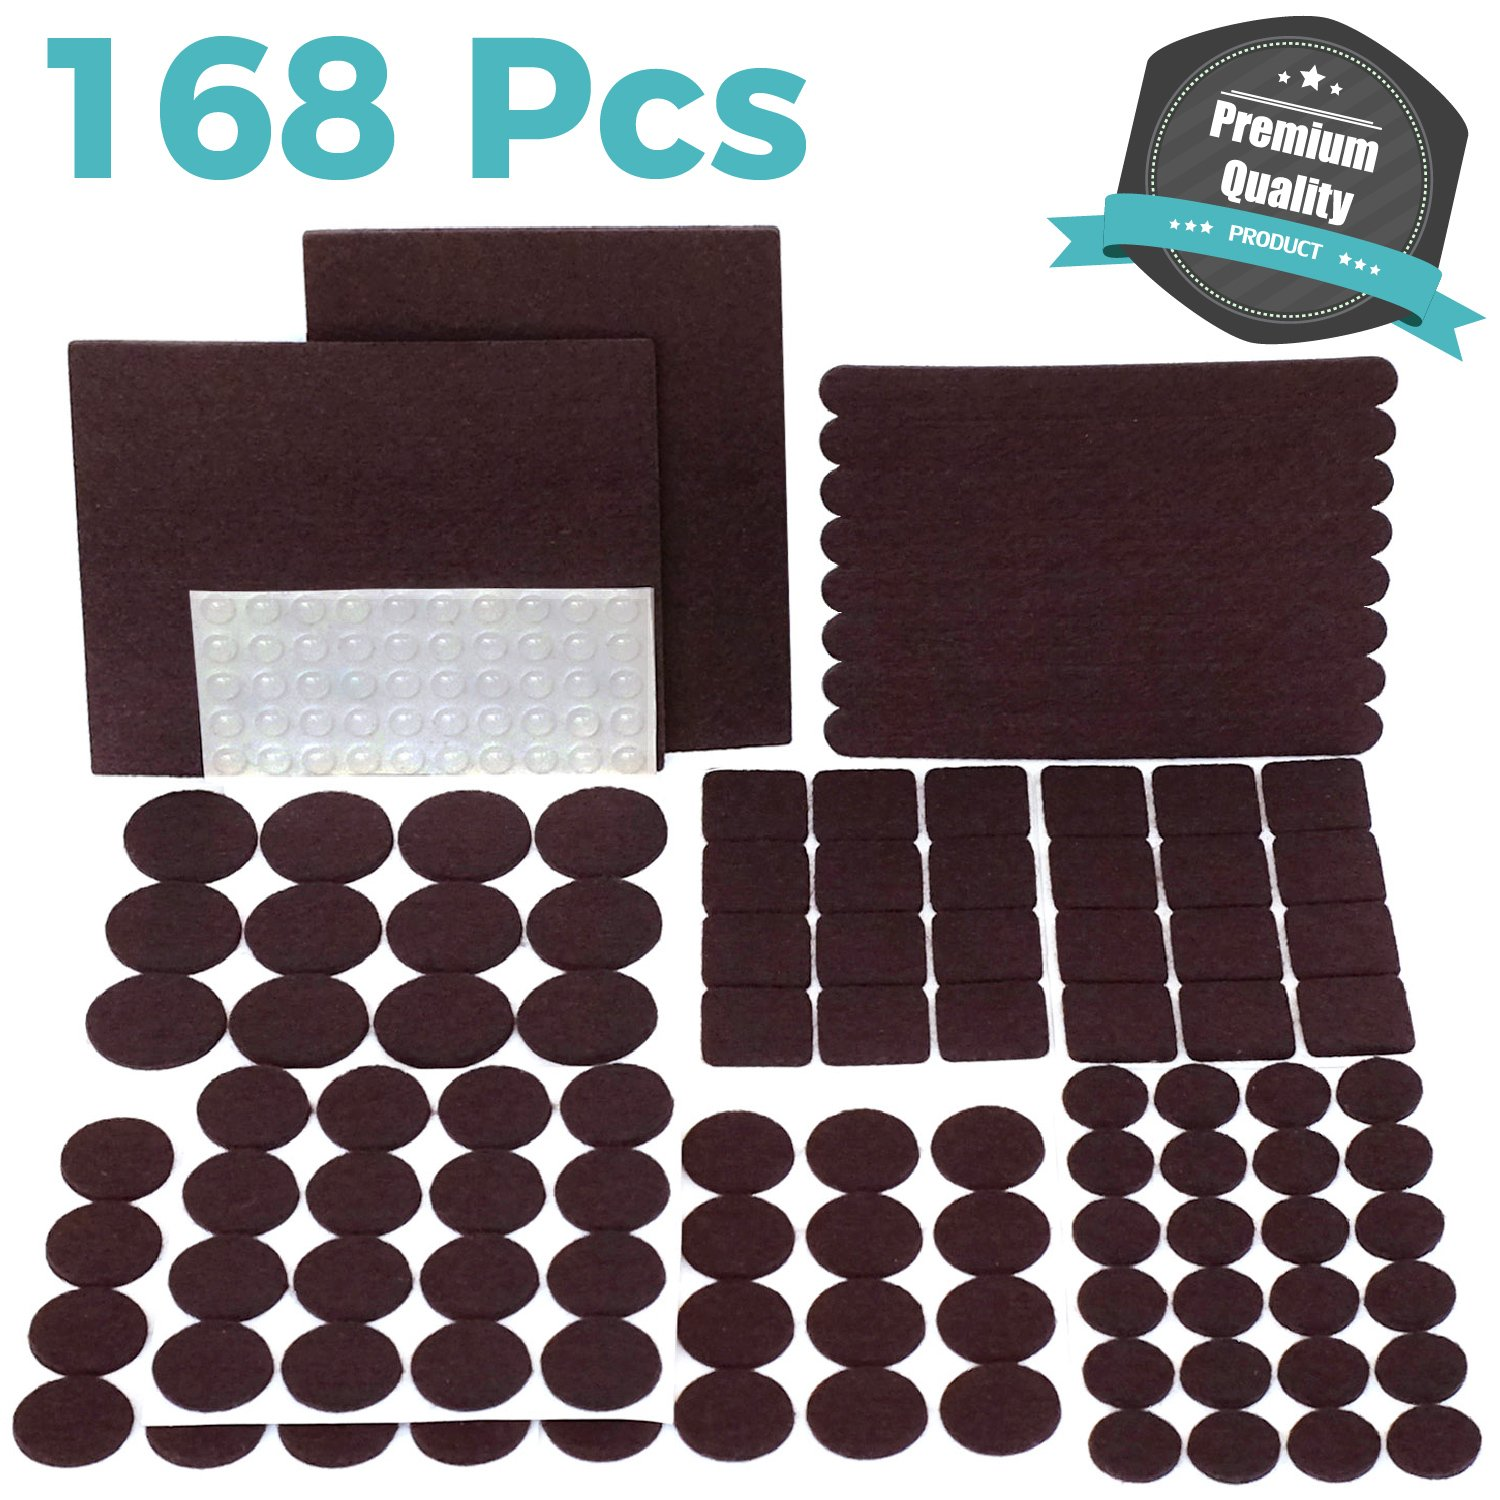 PREMIUM Furniture Pads Set 168 Pcs Value Pack Brown - Heavy Duty Adhesive Felt Pads for Furniture Feet, Assorted Sizes with Noise Dampening Rubber Bumpers. Floor Protectors for Hardwood & Laminate by Gossip